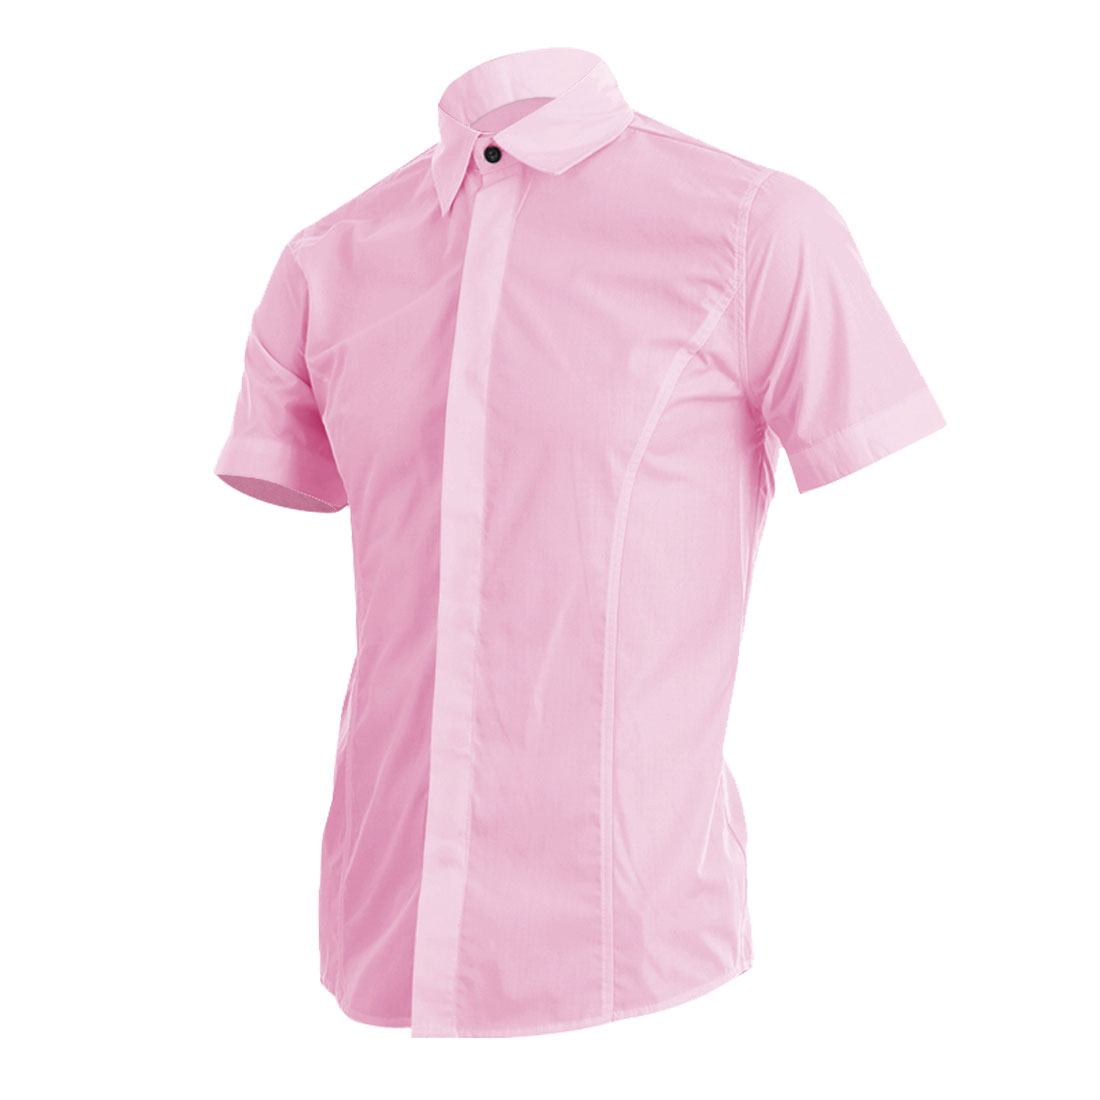 Man Buttoned Cuff Point Collar Solid Color Shirt Pink M